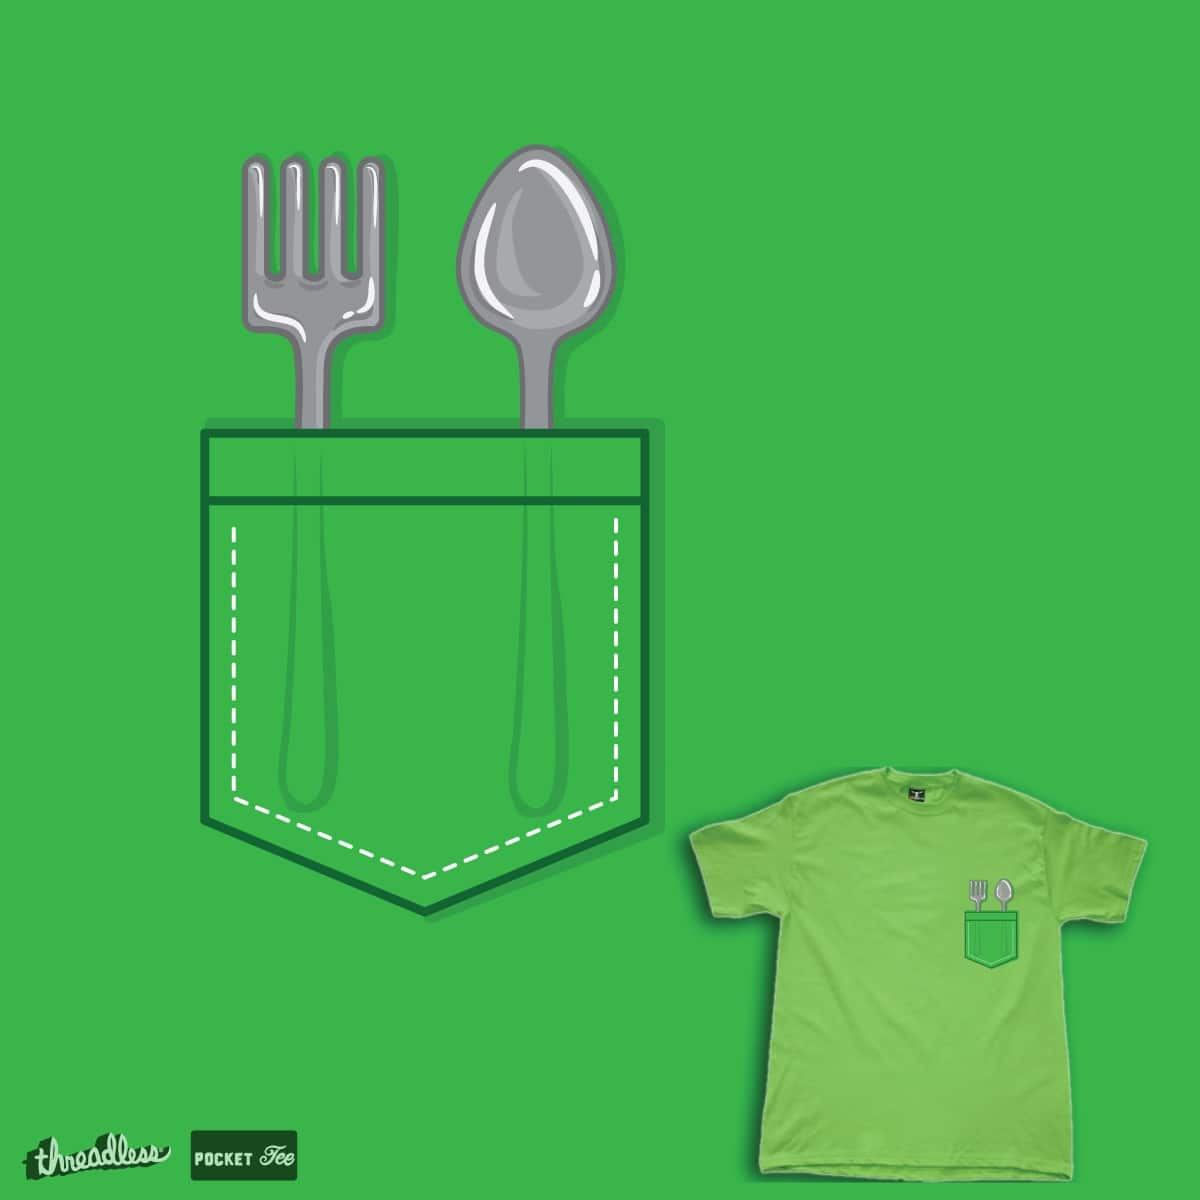 weapon for food fight by je14 on Threadless